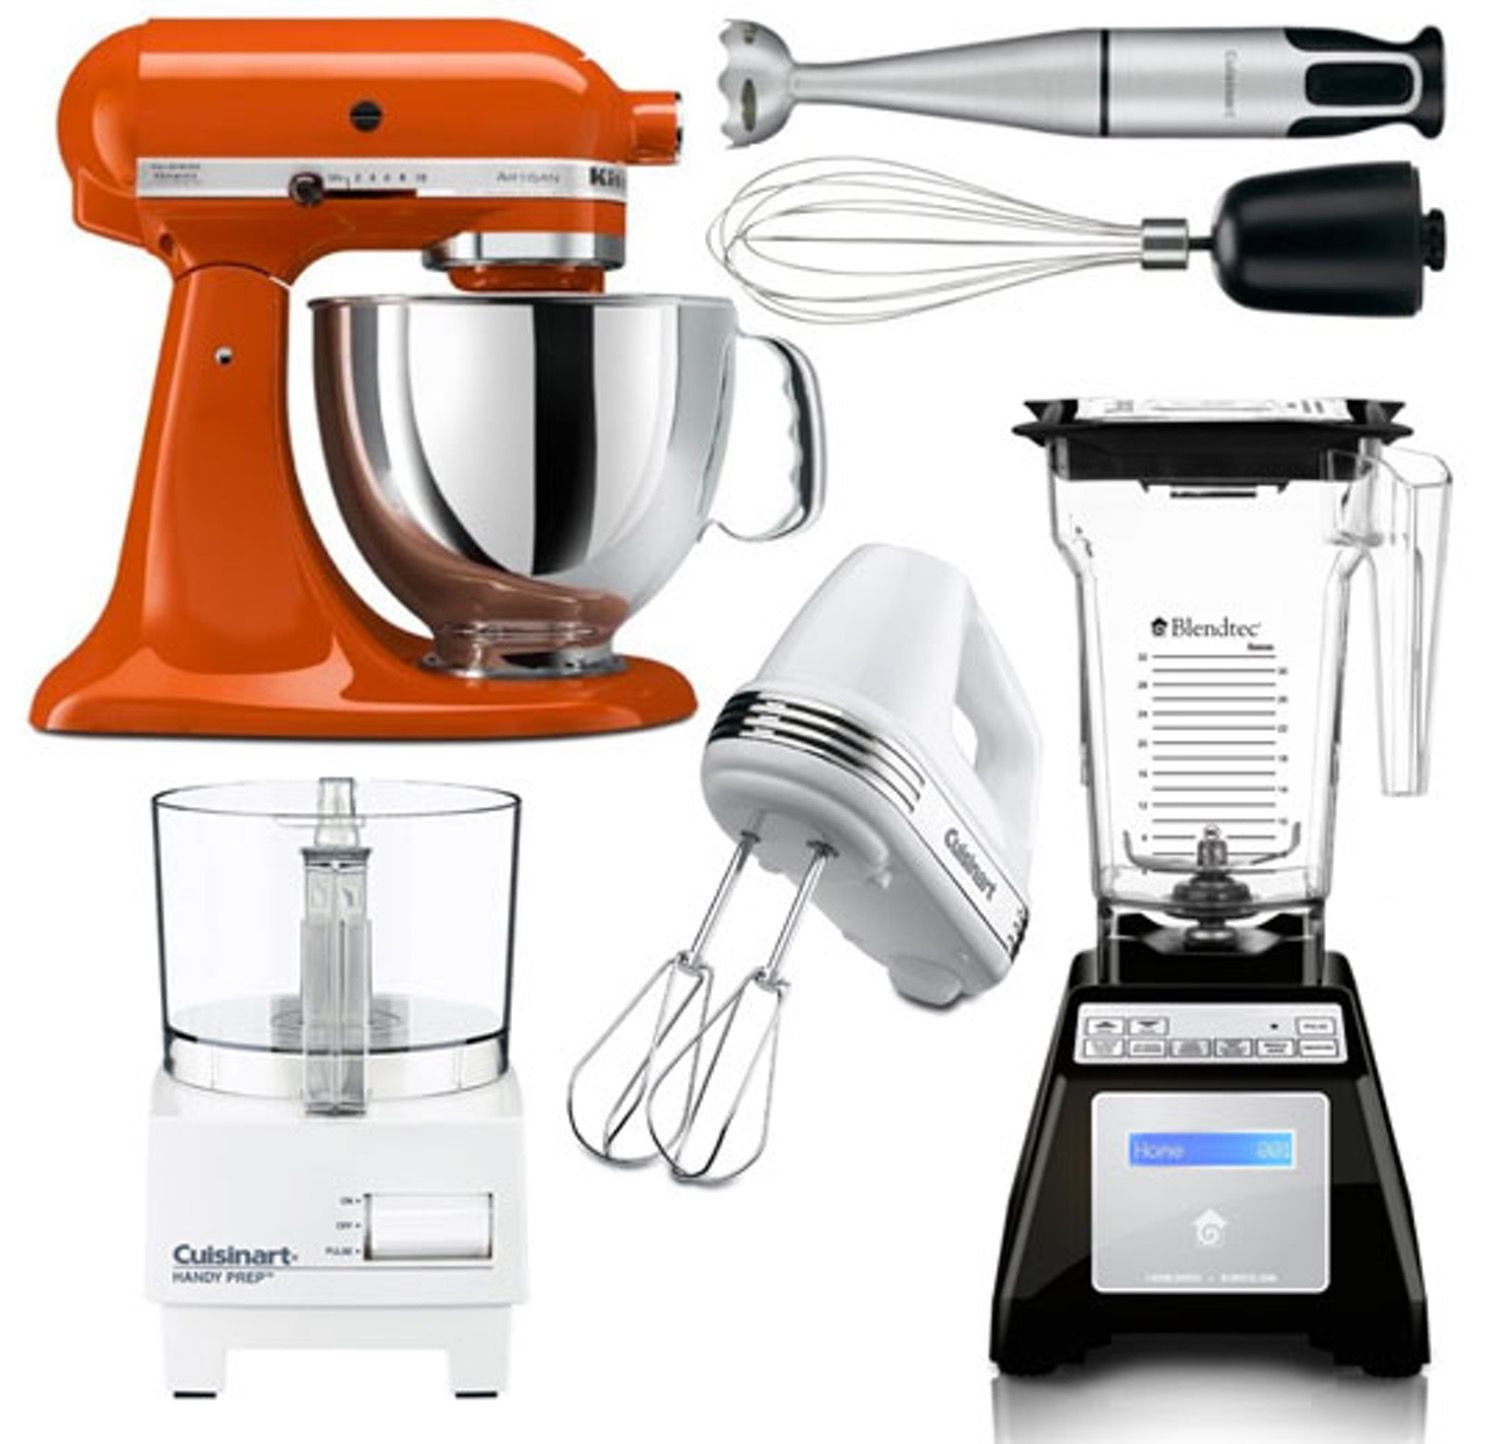 The Kitchn\'s Guide to Essential Small Electric Appliances   Kitchens